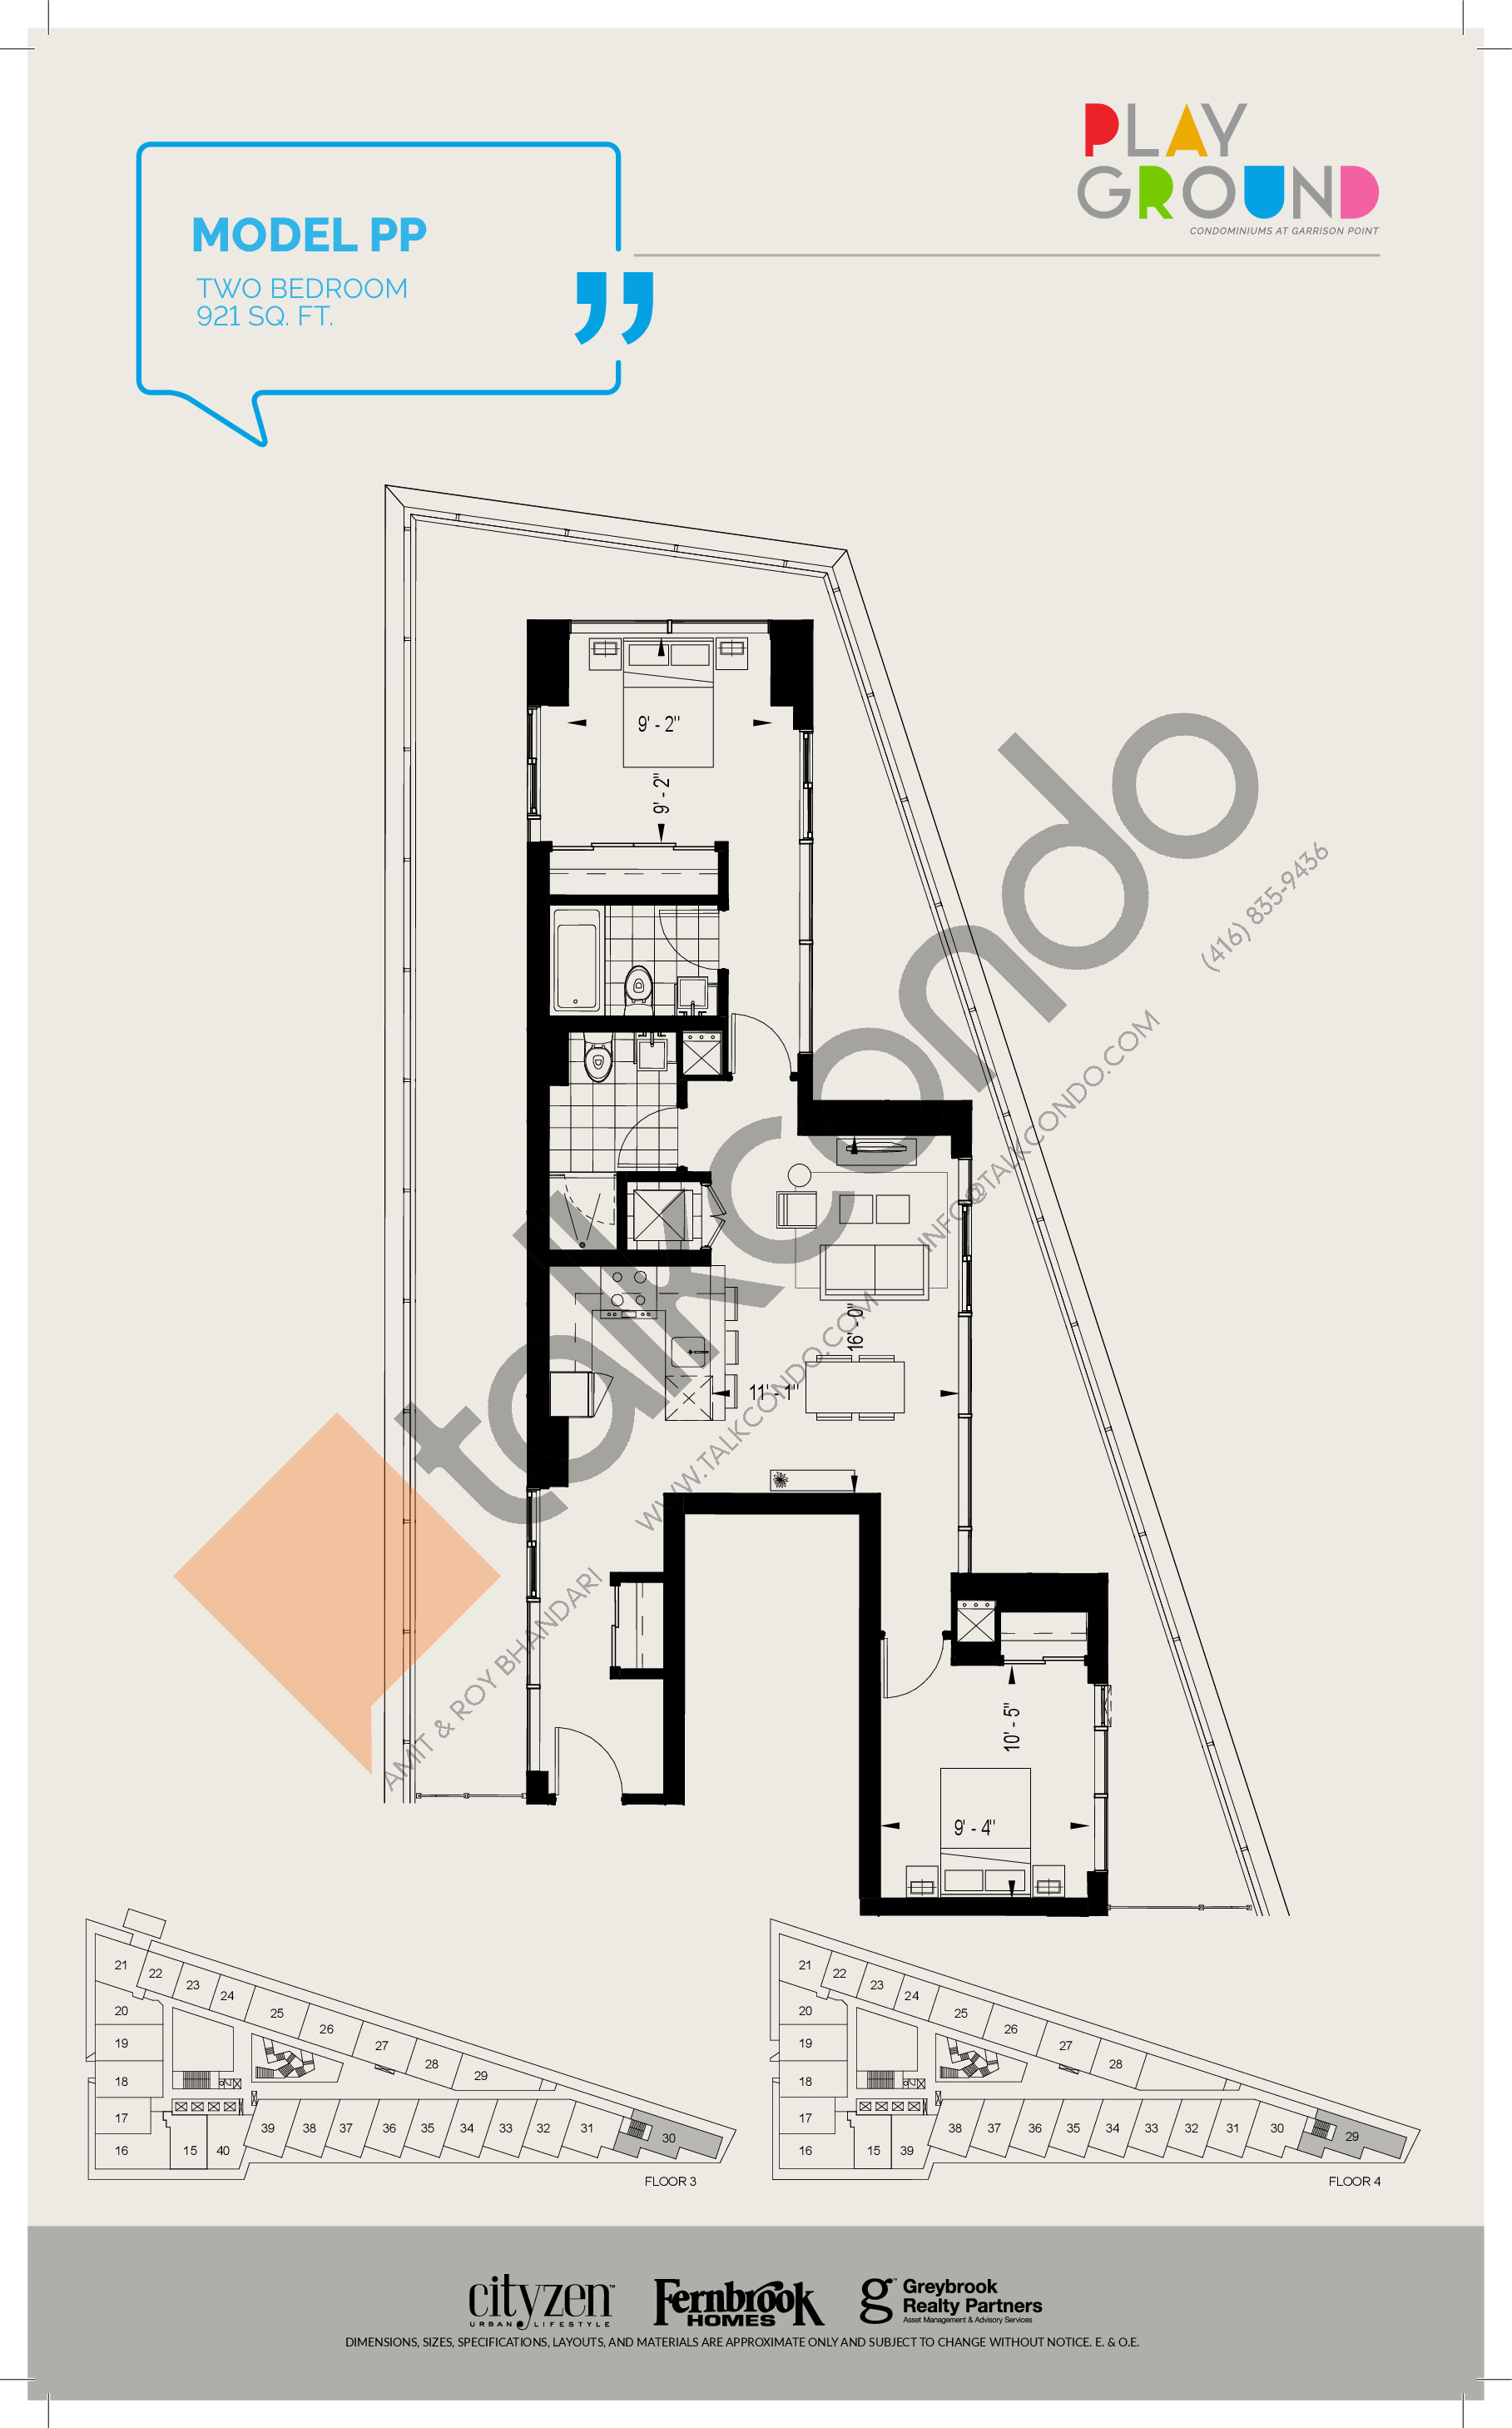 Model PP Floor Plan at Playground Condos at Garrison Point - 921 sq.ft